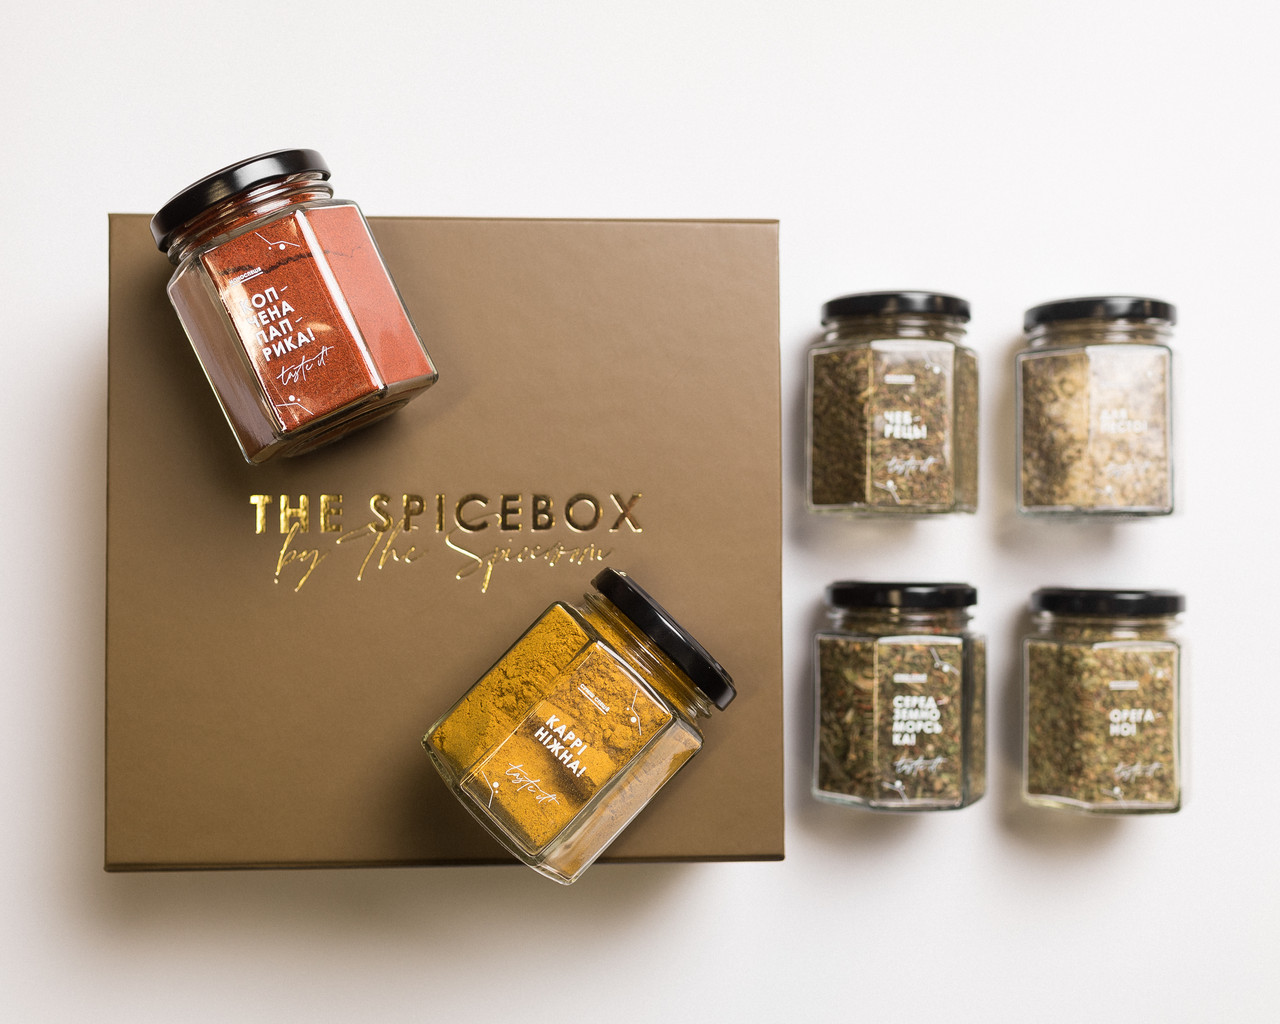 The Spicebox / Премиум Spice 6